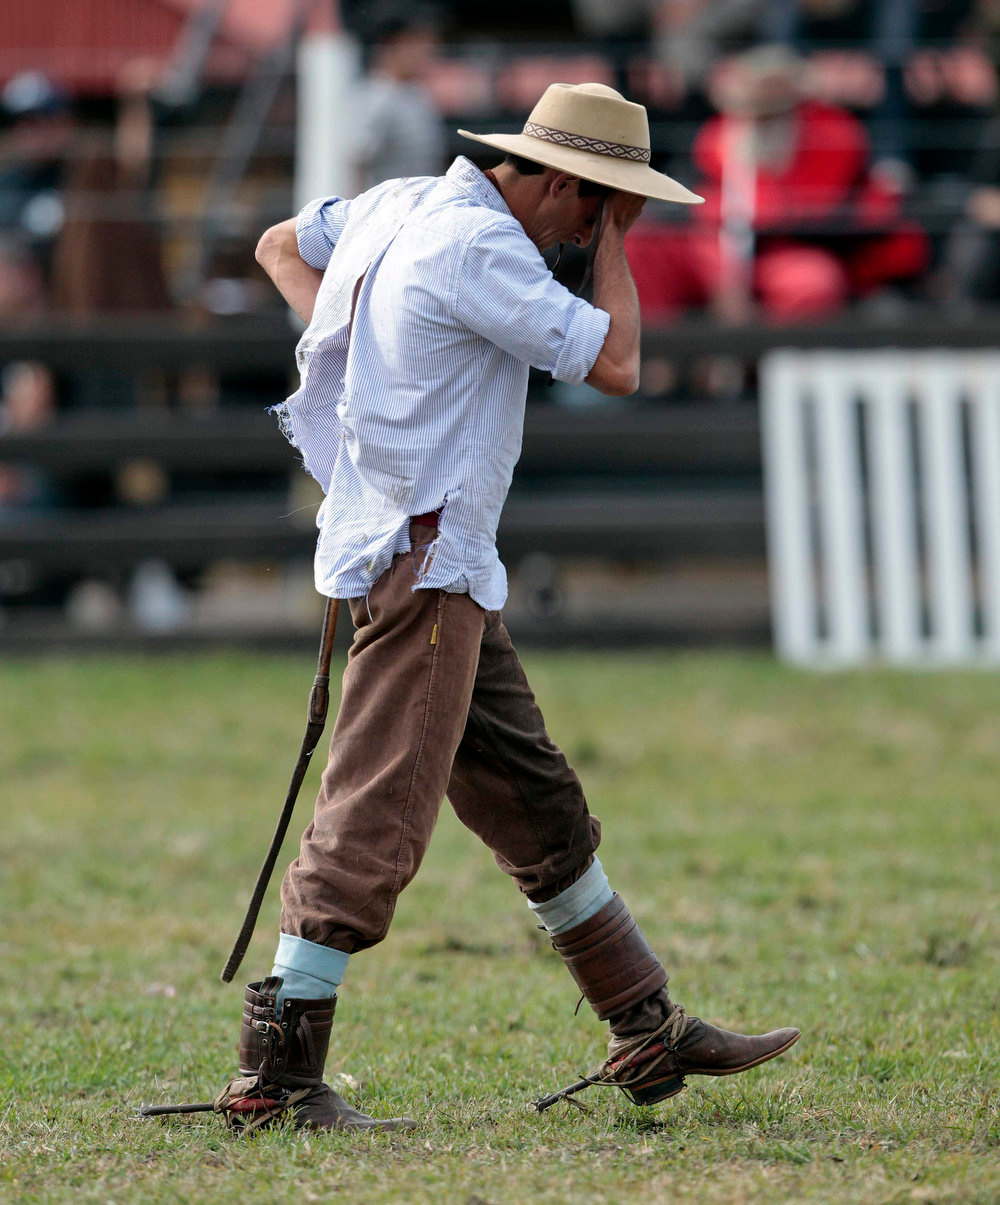 ". A gaucho reacts in pain after being unseated by an unbroken horse during the annual celebration of Criolla Week in Montevideo, March 25, 2013. Throughout Easter Week ""gauchos\"", the Latin American equivalent of the North American \""cowboy\"", from all Uruguay and neighboring Argentina and Brazil visit Montevideo to participate in Criolla Week to win the award of best rider. The competition is held March 24 - March 30. REUTERS/Andres Stapff"